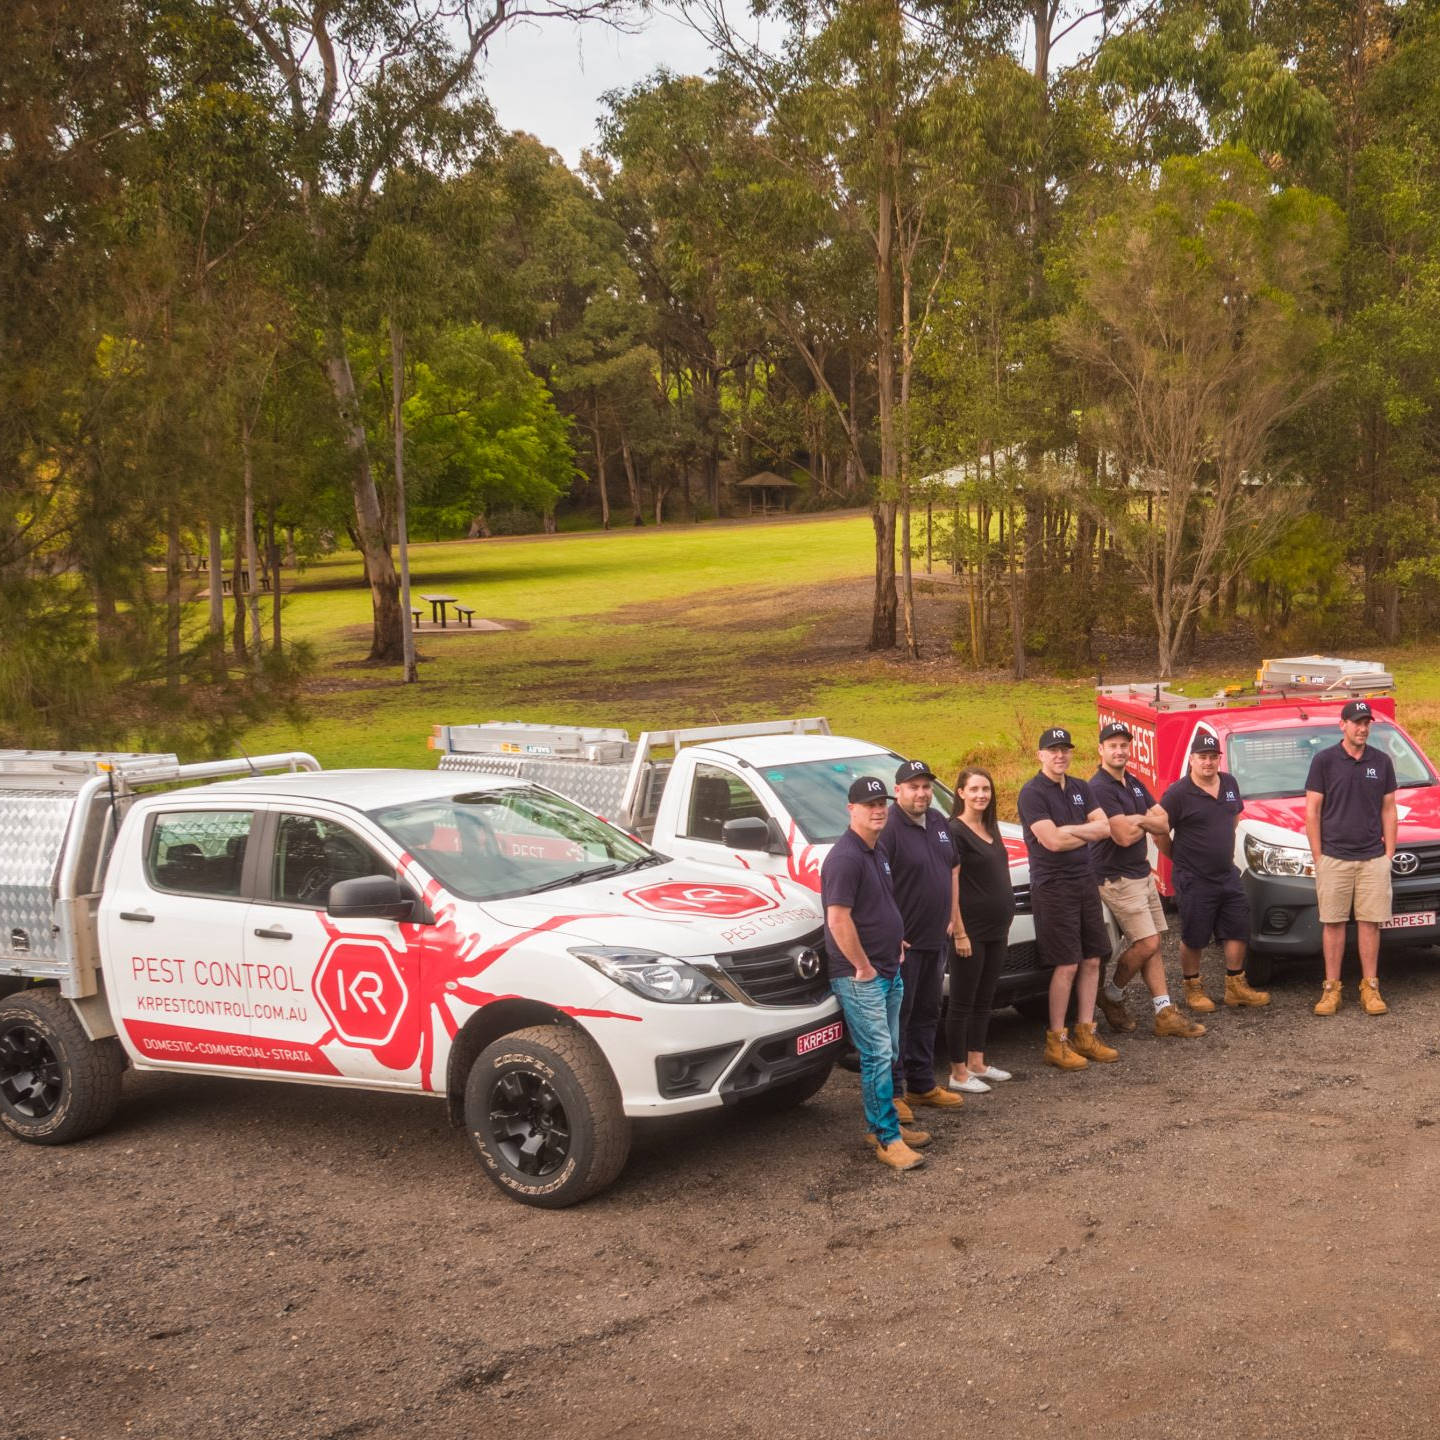 Rouse Hill Pest Control & Termite Inspections Specialists KR Pest Control